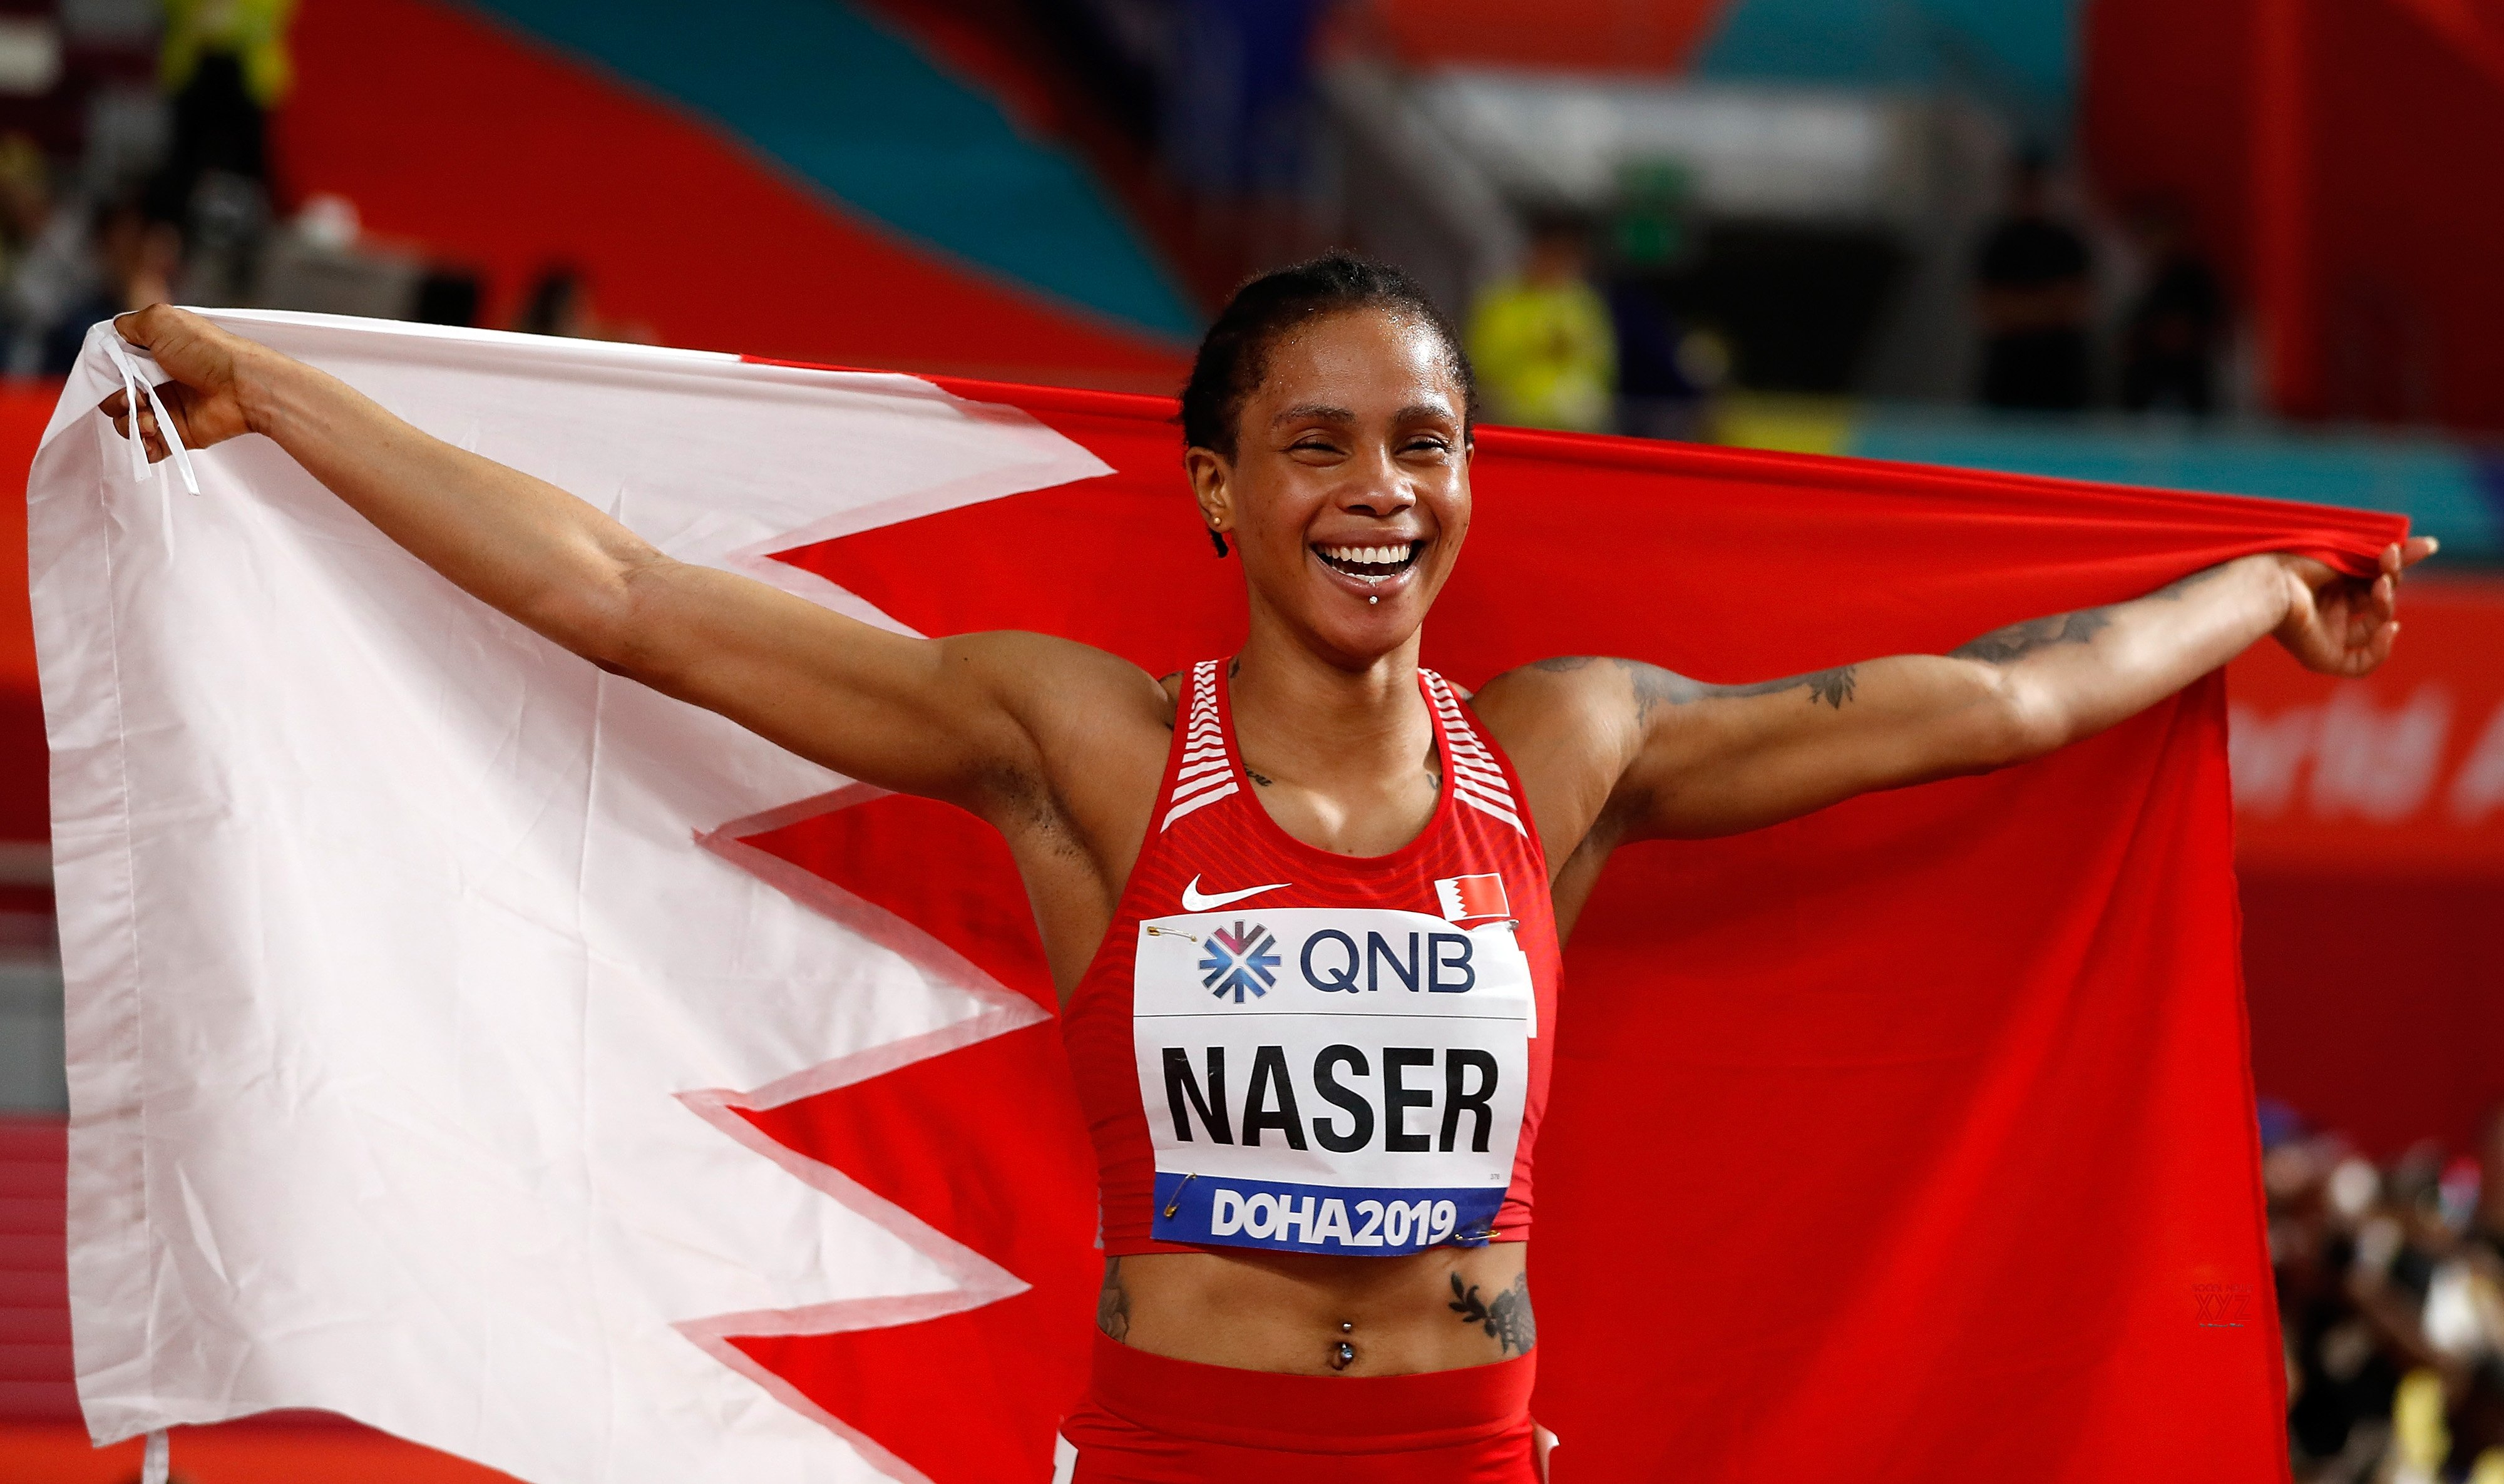 Doha Worlds: Bahrain's Naser is 1st Asian to win 400m gold